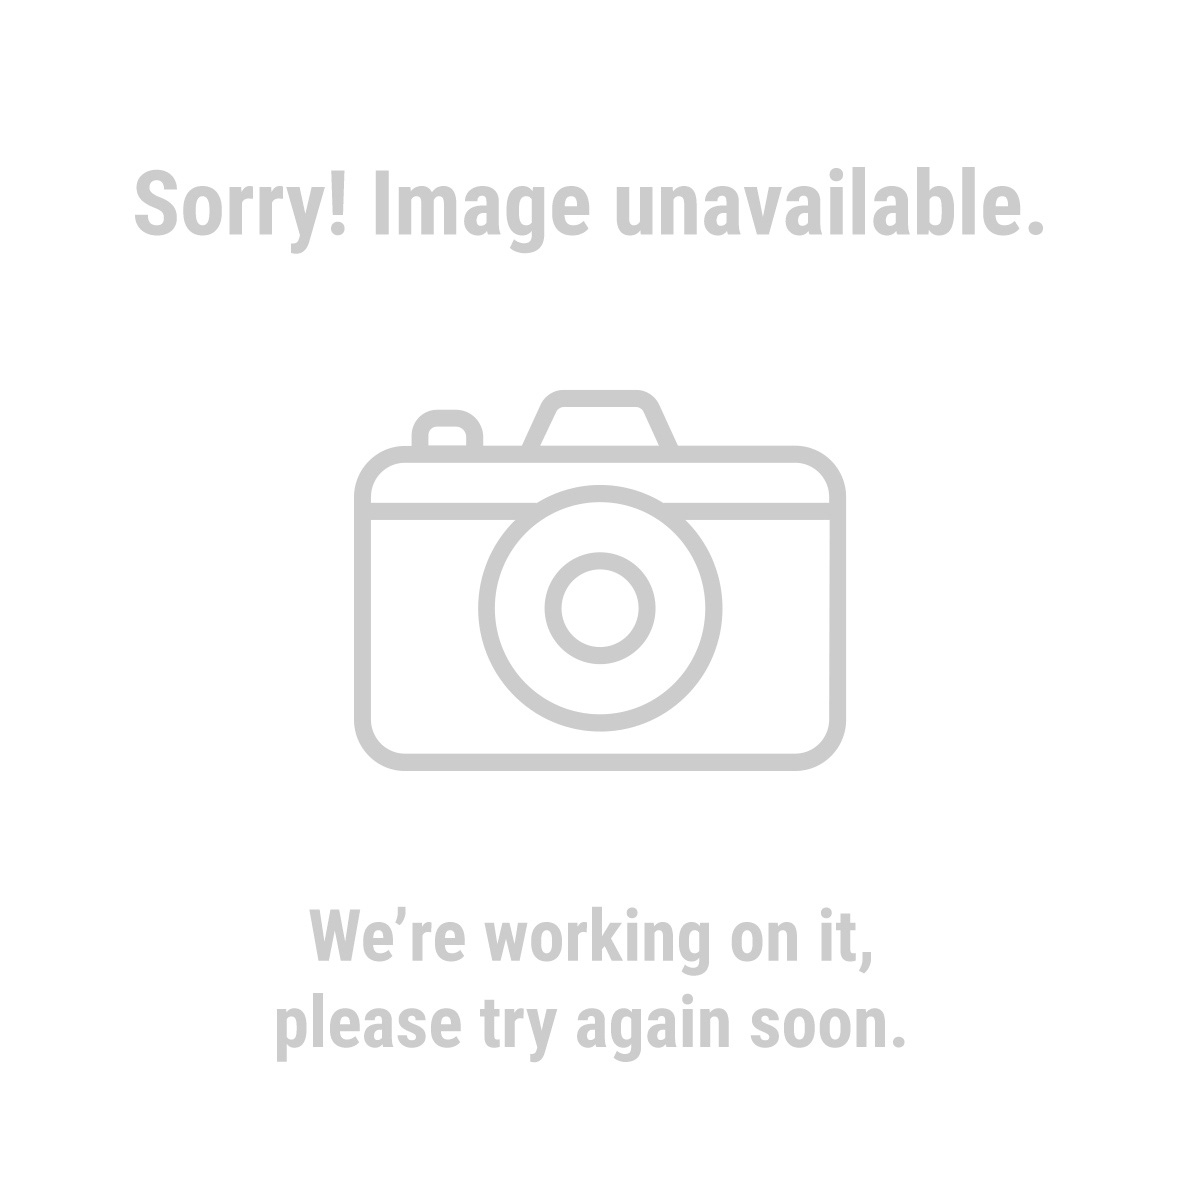 DAP 65164 Alex® Painter's Acrylic Latex Caulk